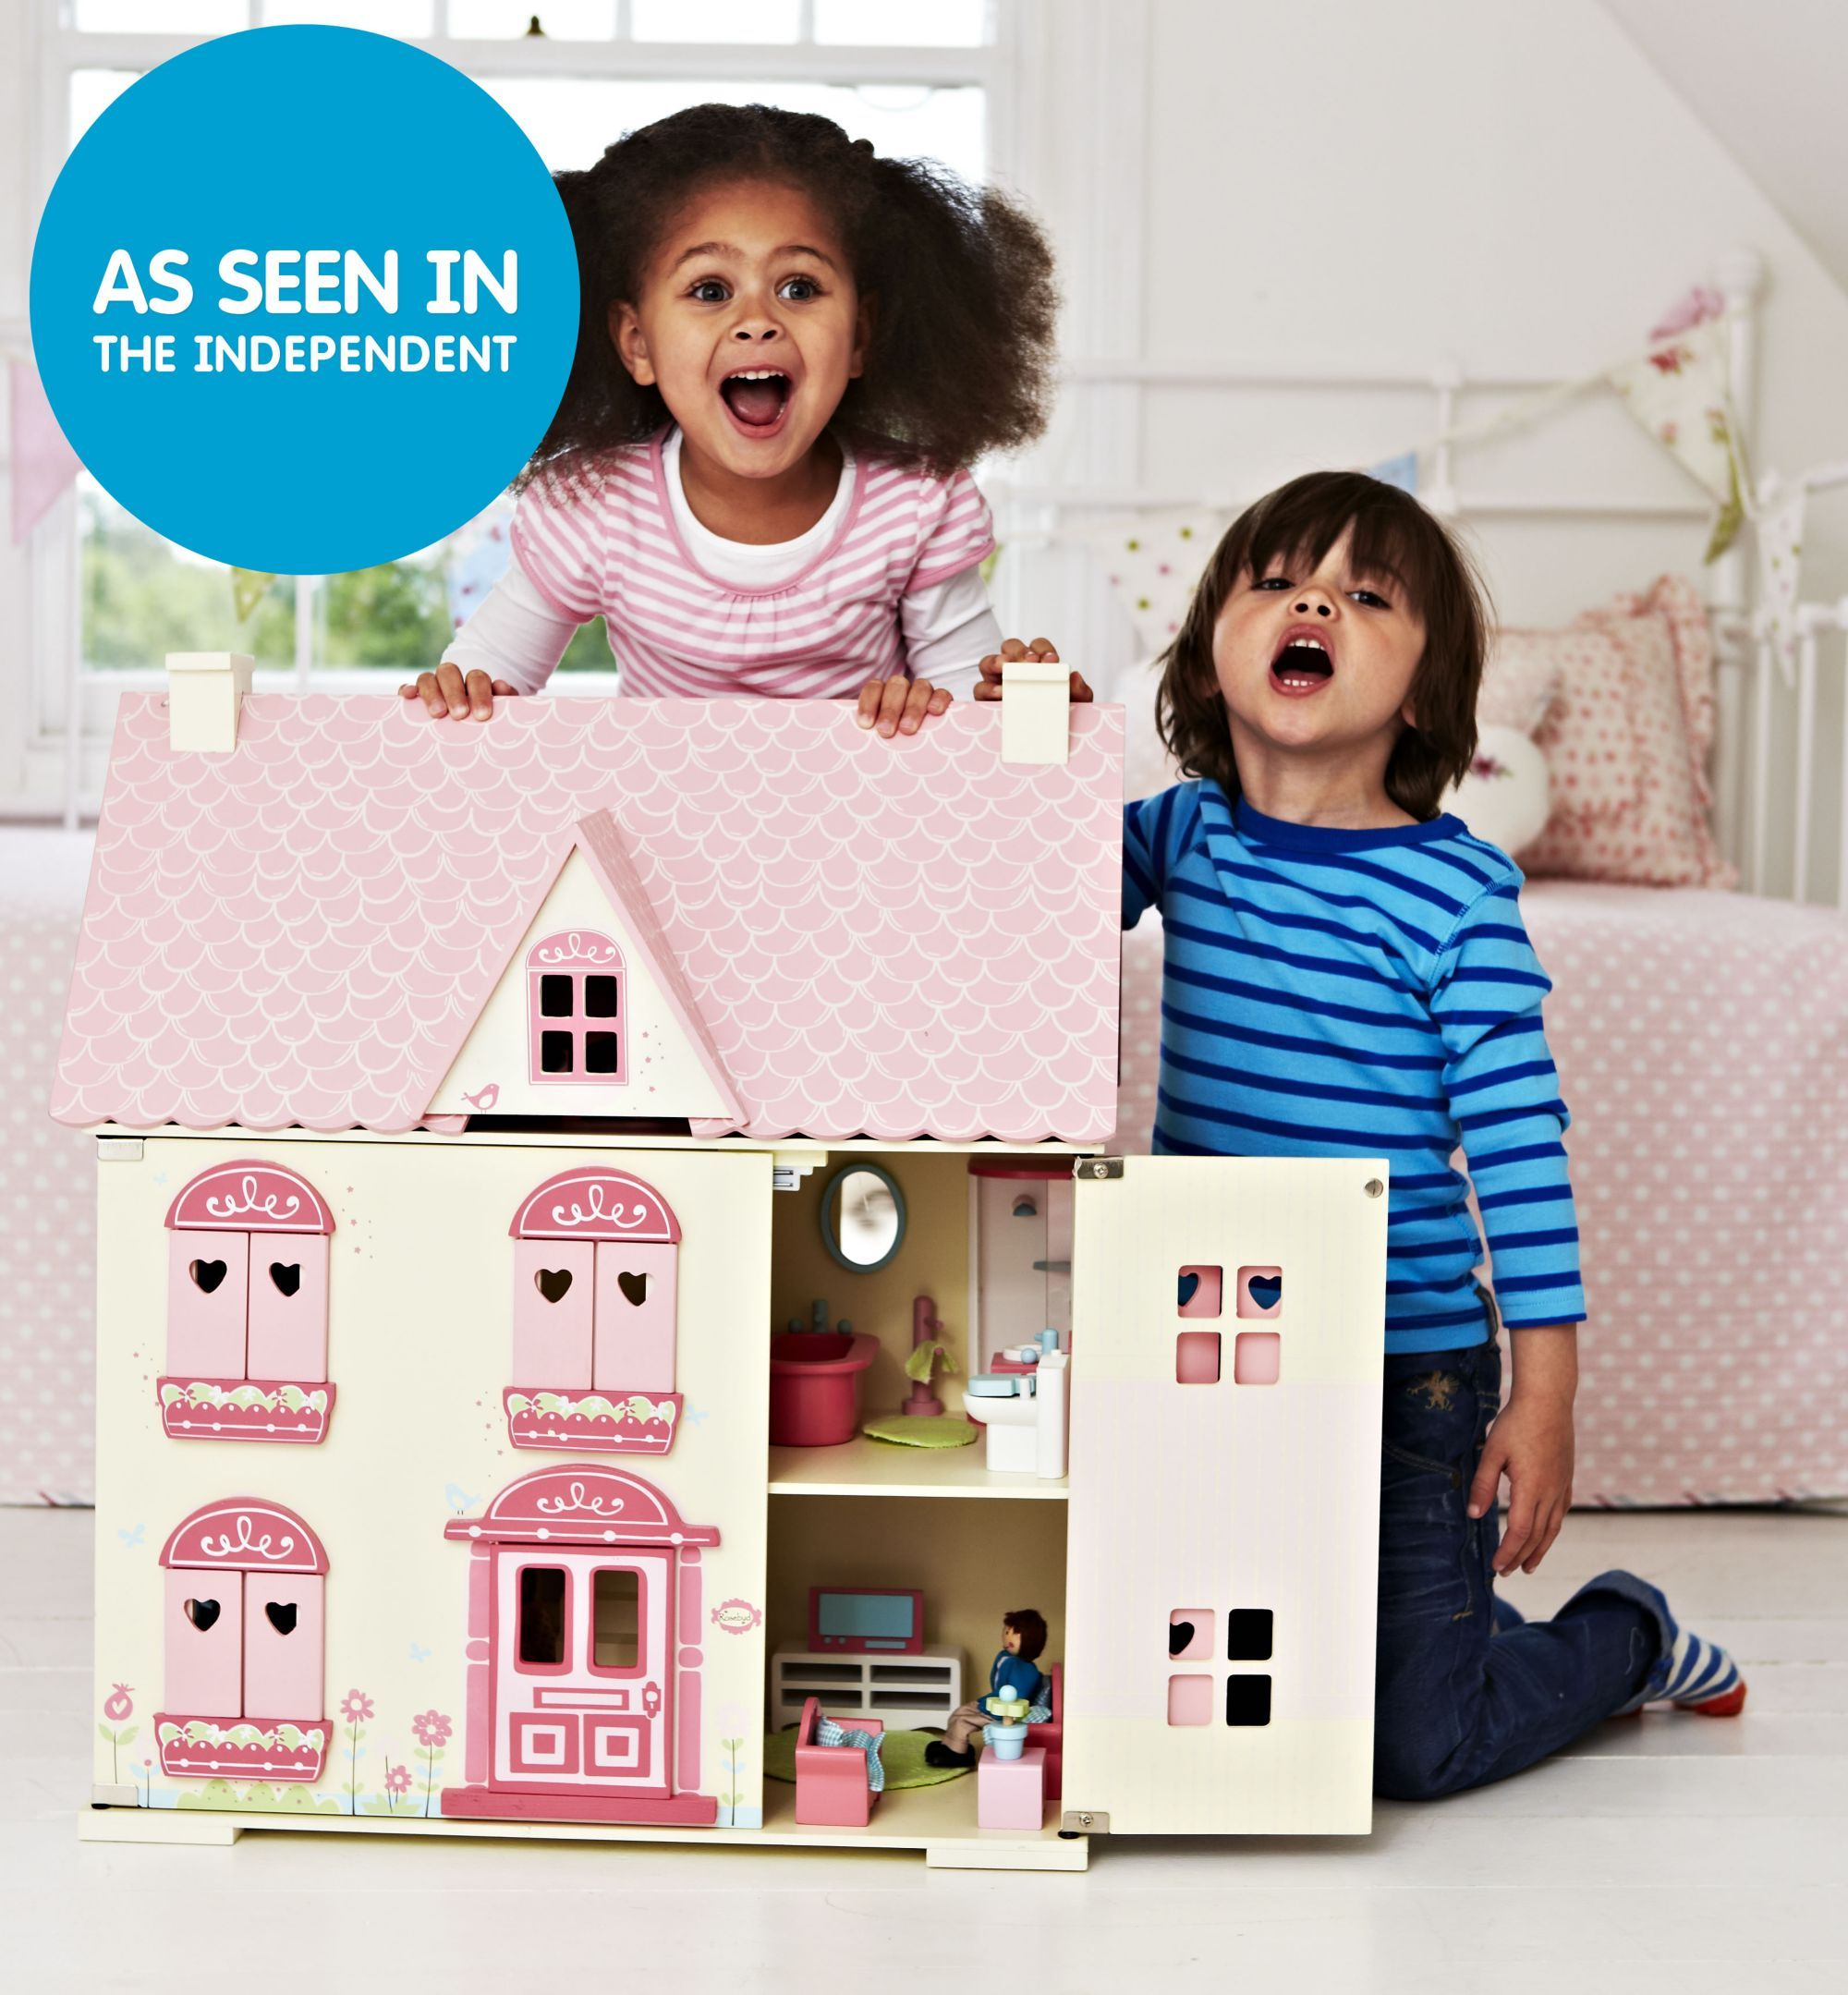 Dolls house at argos co uk your online shop for dolls houses dolls - Rosebud House Is A Gorgeous Wooden Dolls House Which Will Inspire Years Of Fun Dolls House Play For Your Child